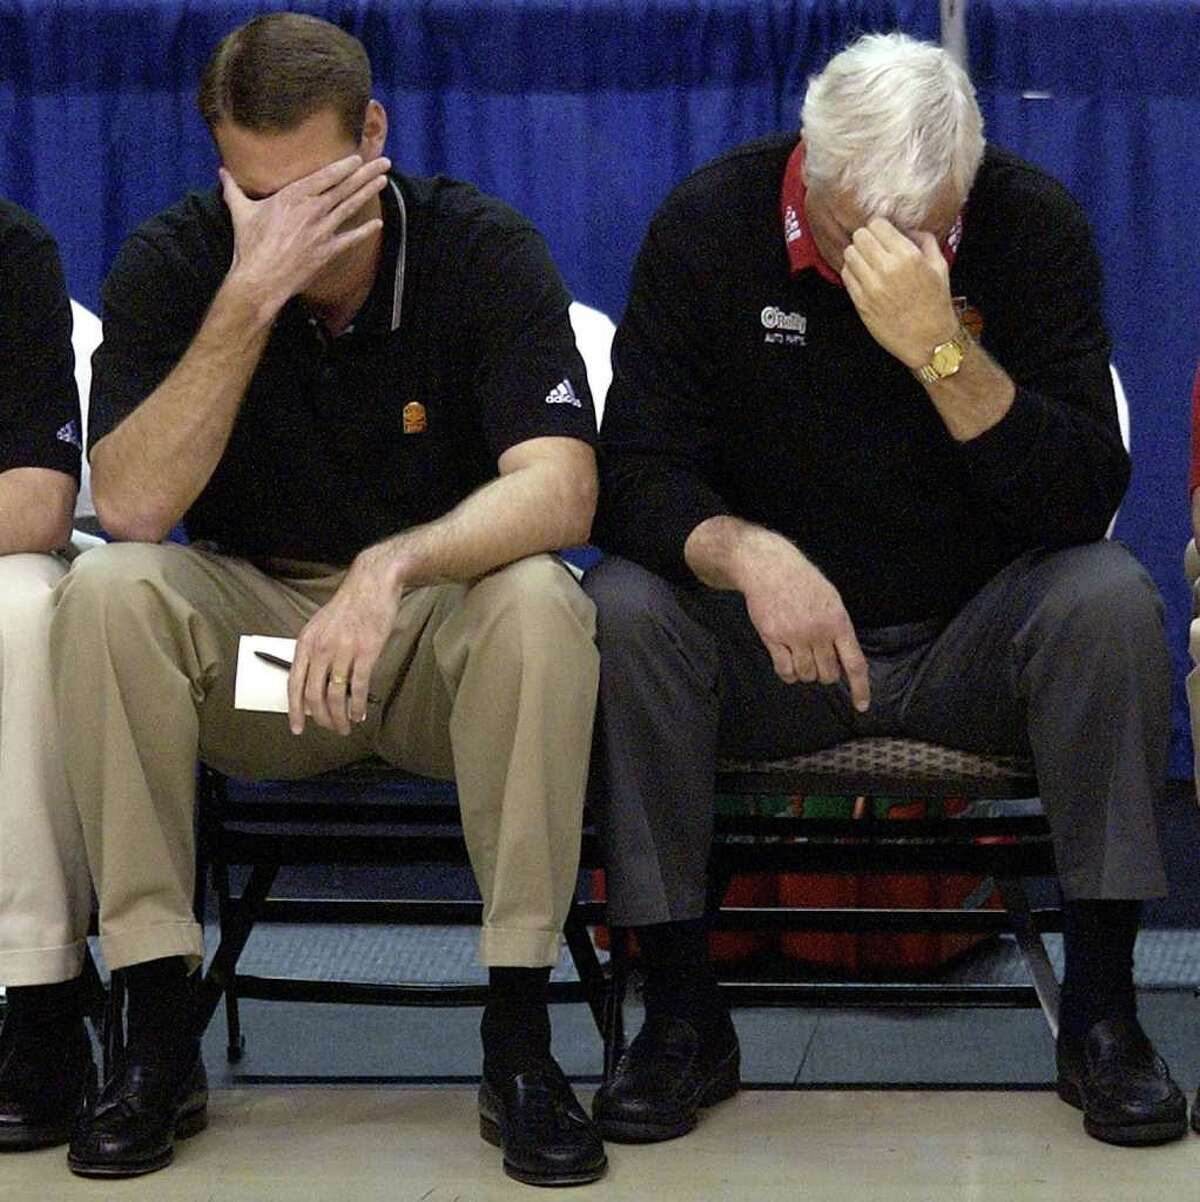 Texas Tech head coach Bobby Knight, right, and assistant coach Pat Knight, left, cover their faces late in the 82-77 loss to Oklahoma State, Saturday, March 13, 2004, during the semi finals of the Big 12 Tournament in Dallas. (AP Photo/Tony Gutierrez)